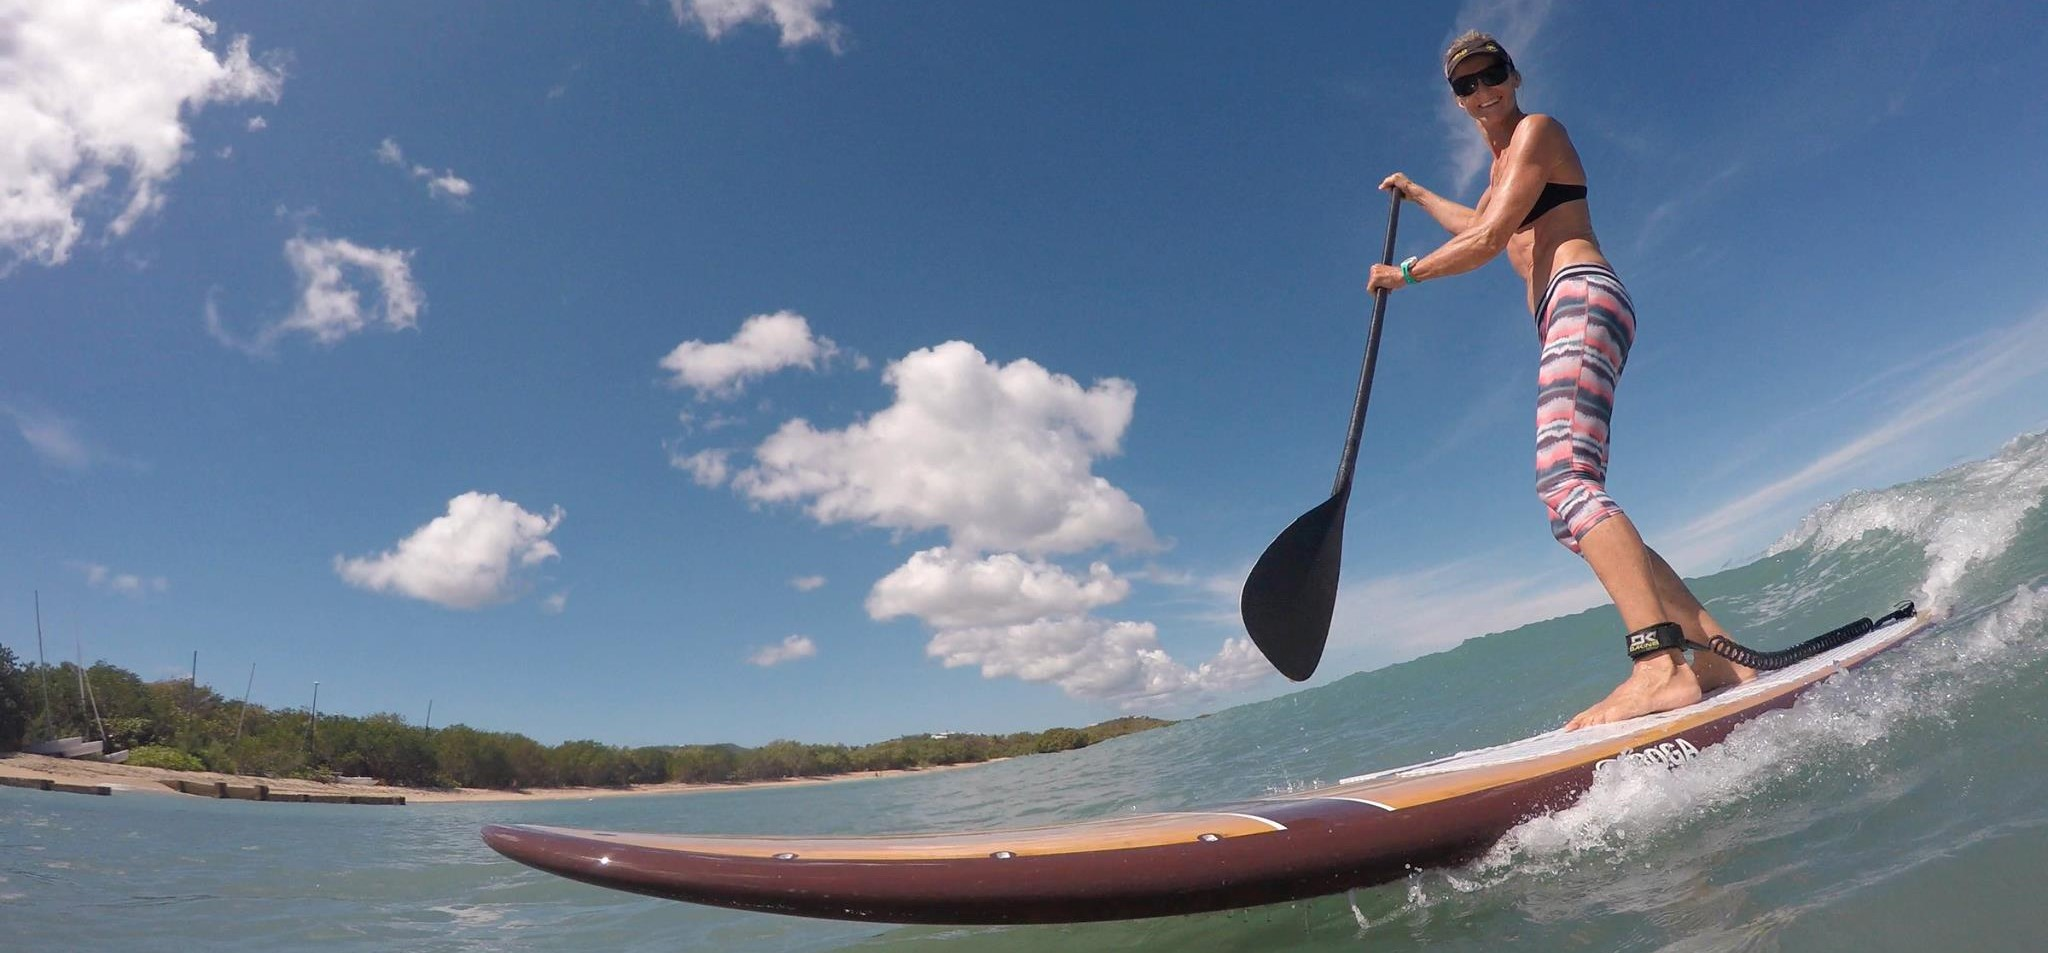 Paddleboarder riding a wave at kite st croix.